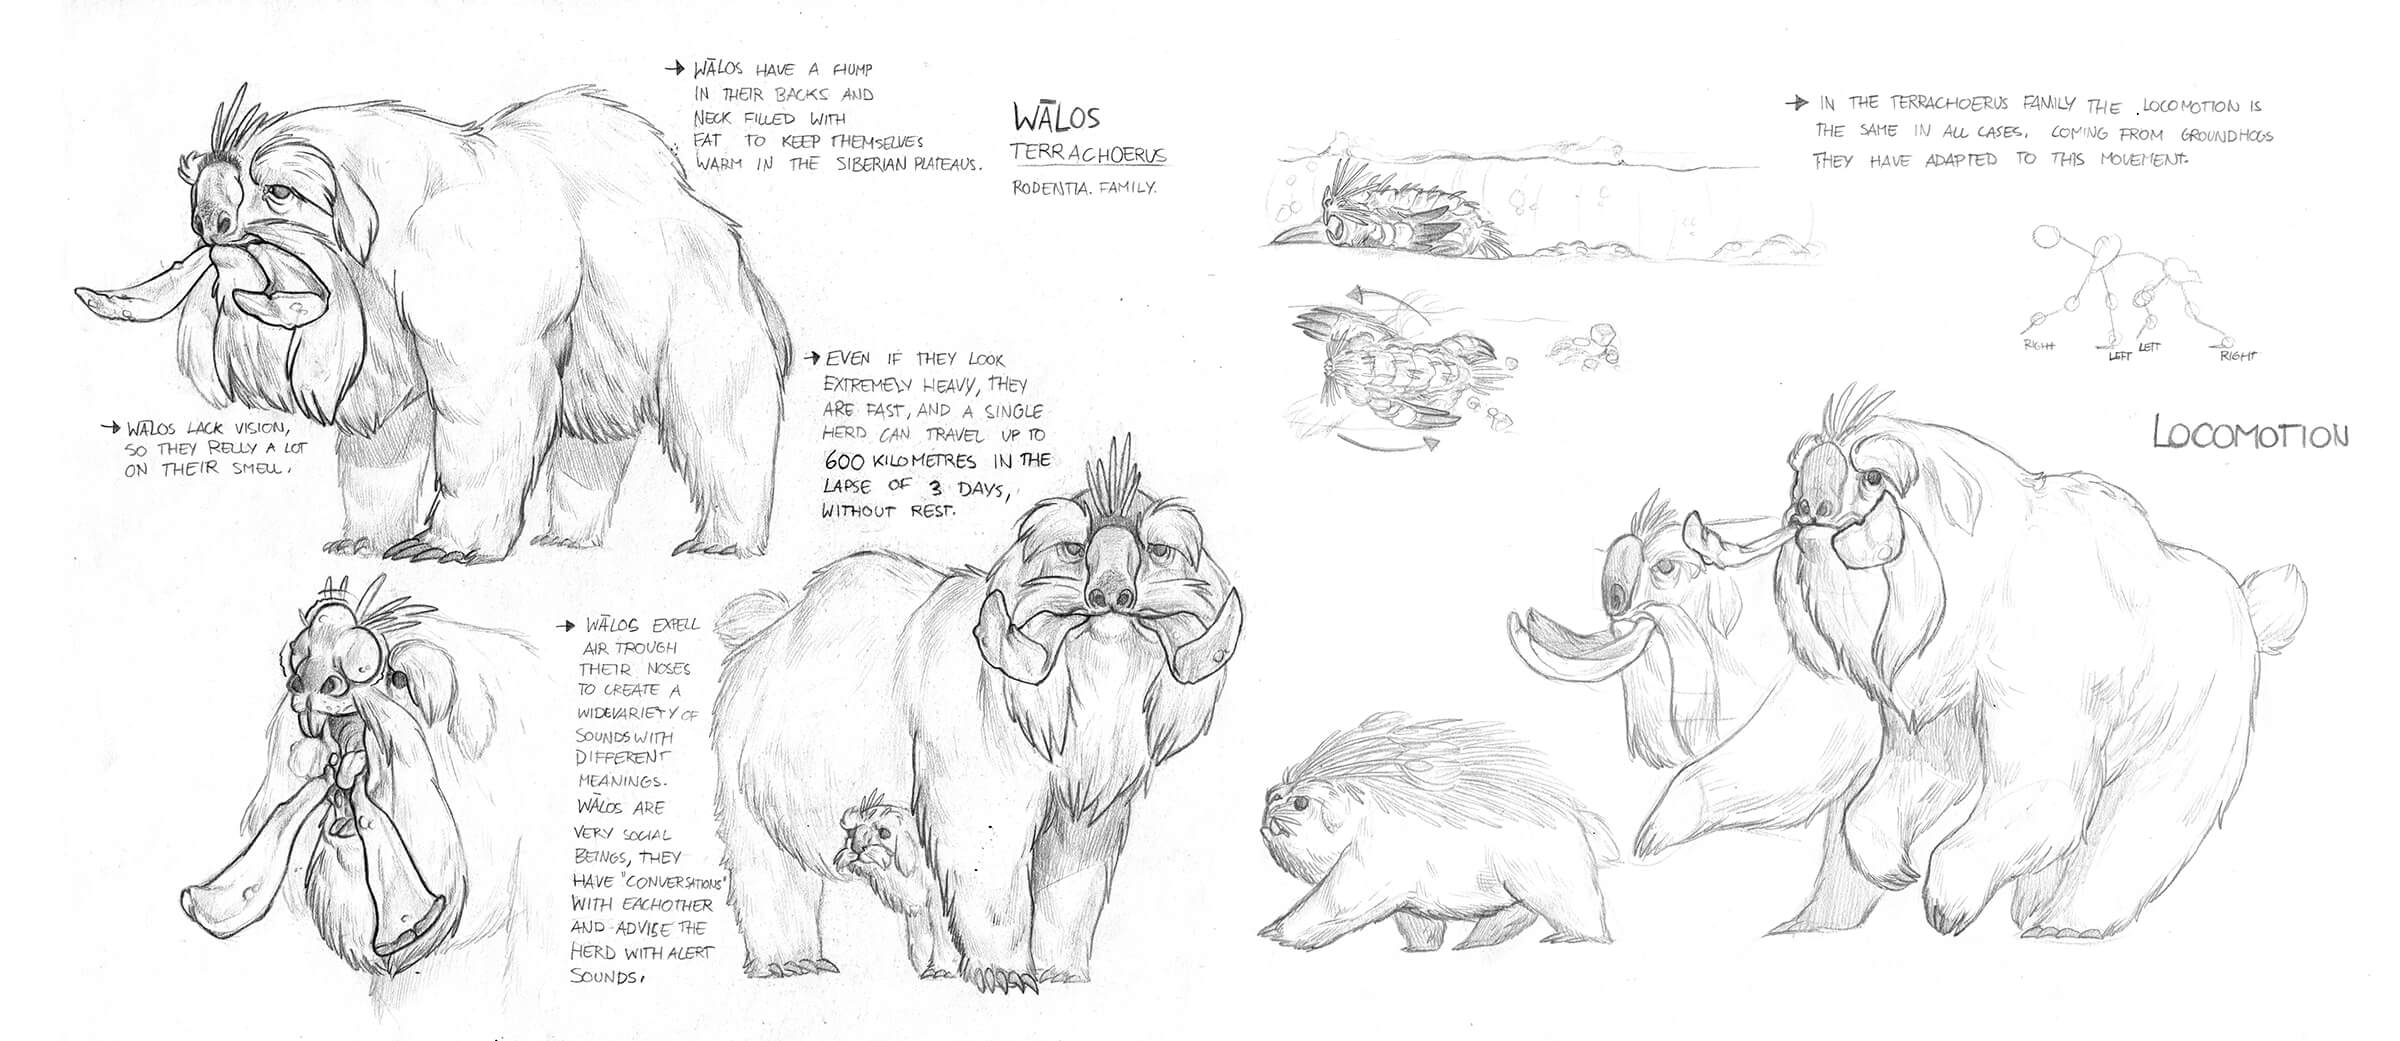 Black-and-white sketches of a fantastical white furry beast with features of a bear, dog, and boar as it stands and runs.